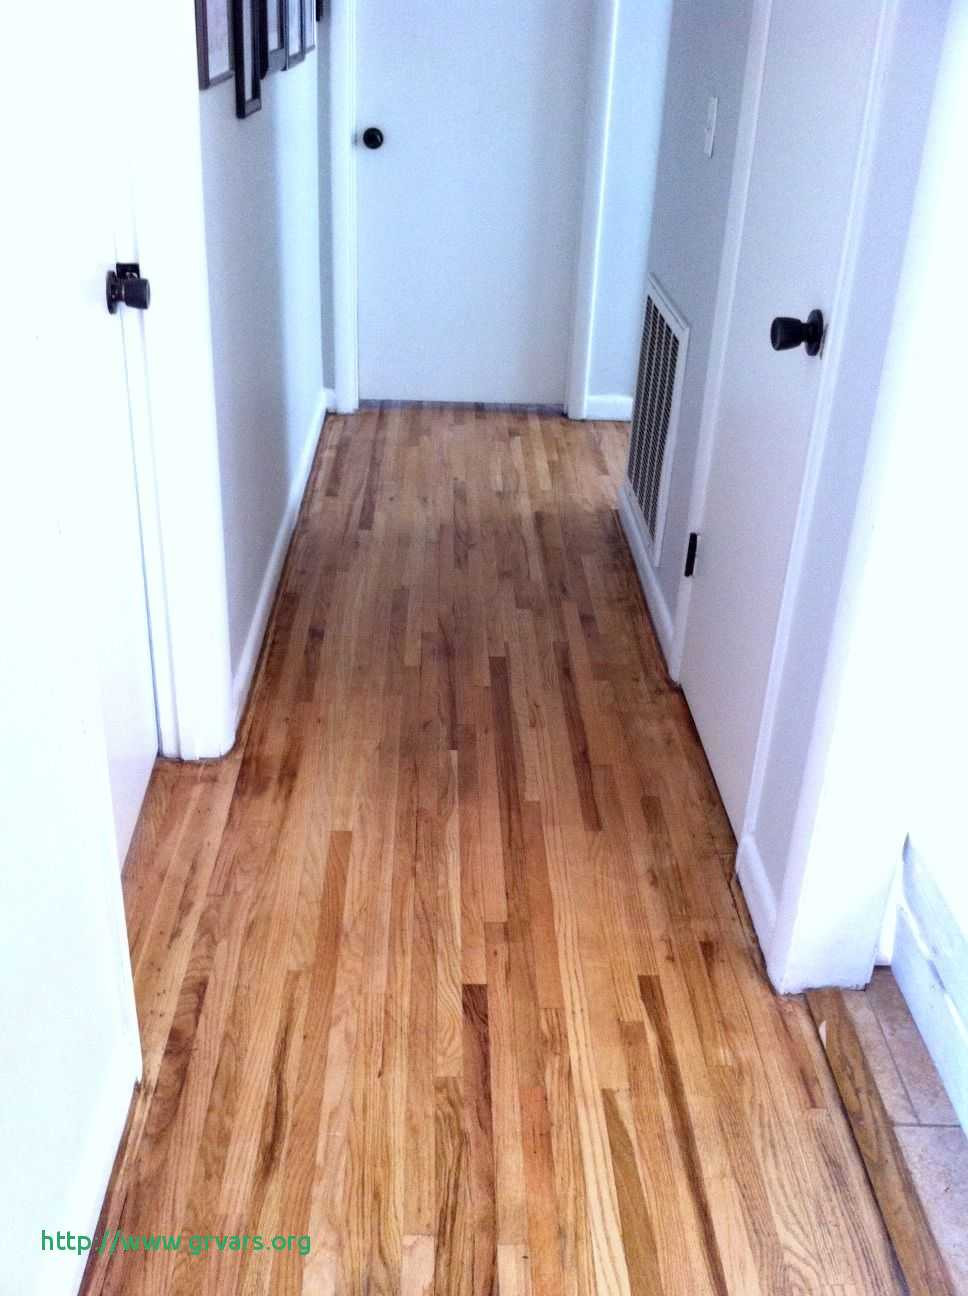 homerwood hardwood flooring reviews of 23 frais how much is a hardwood floor ideas blog with how much is a hardwood floor nouveau this is what happens when you don t listen